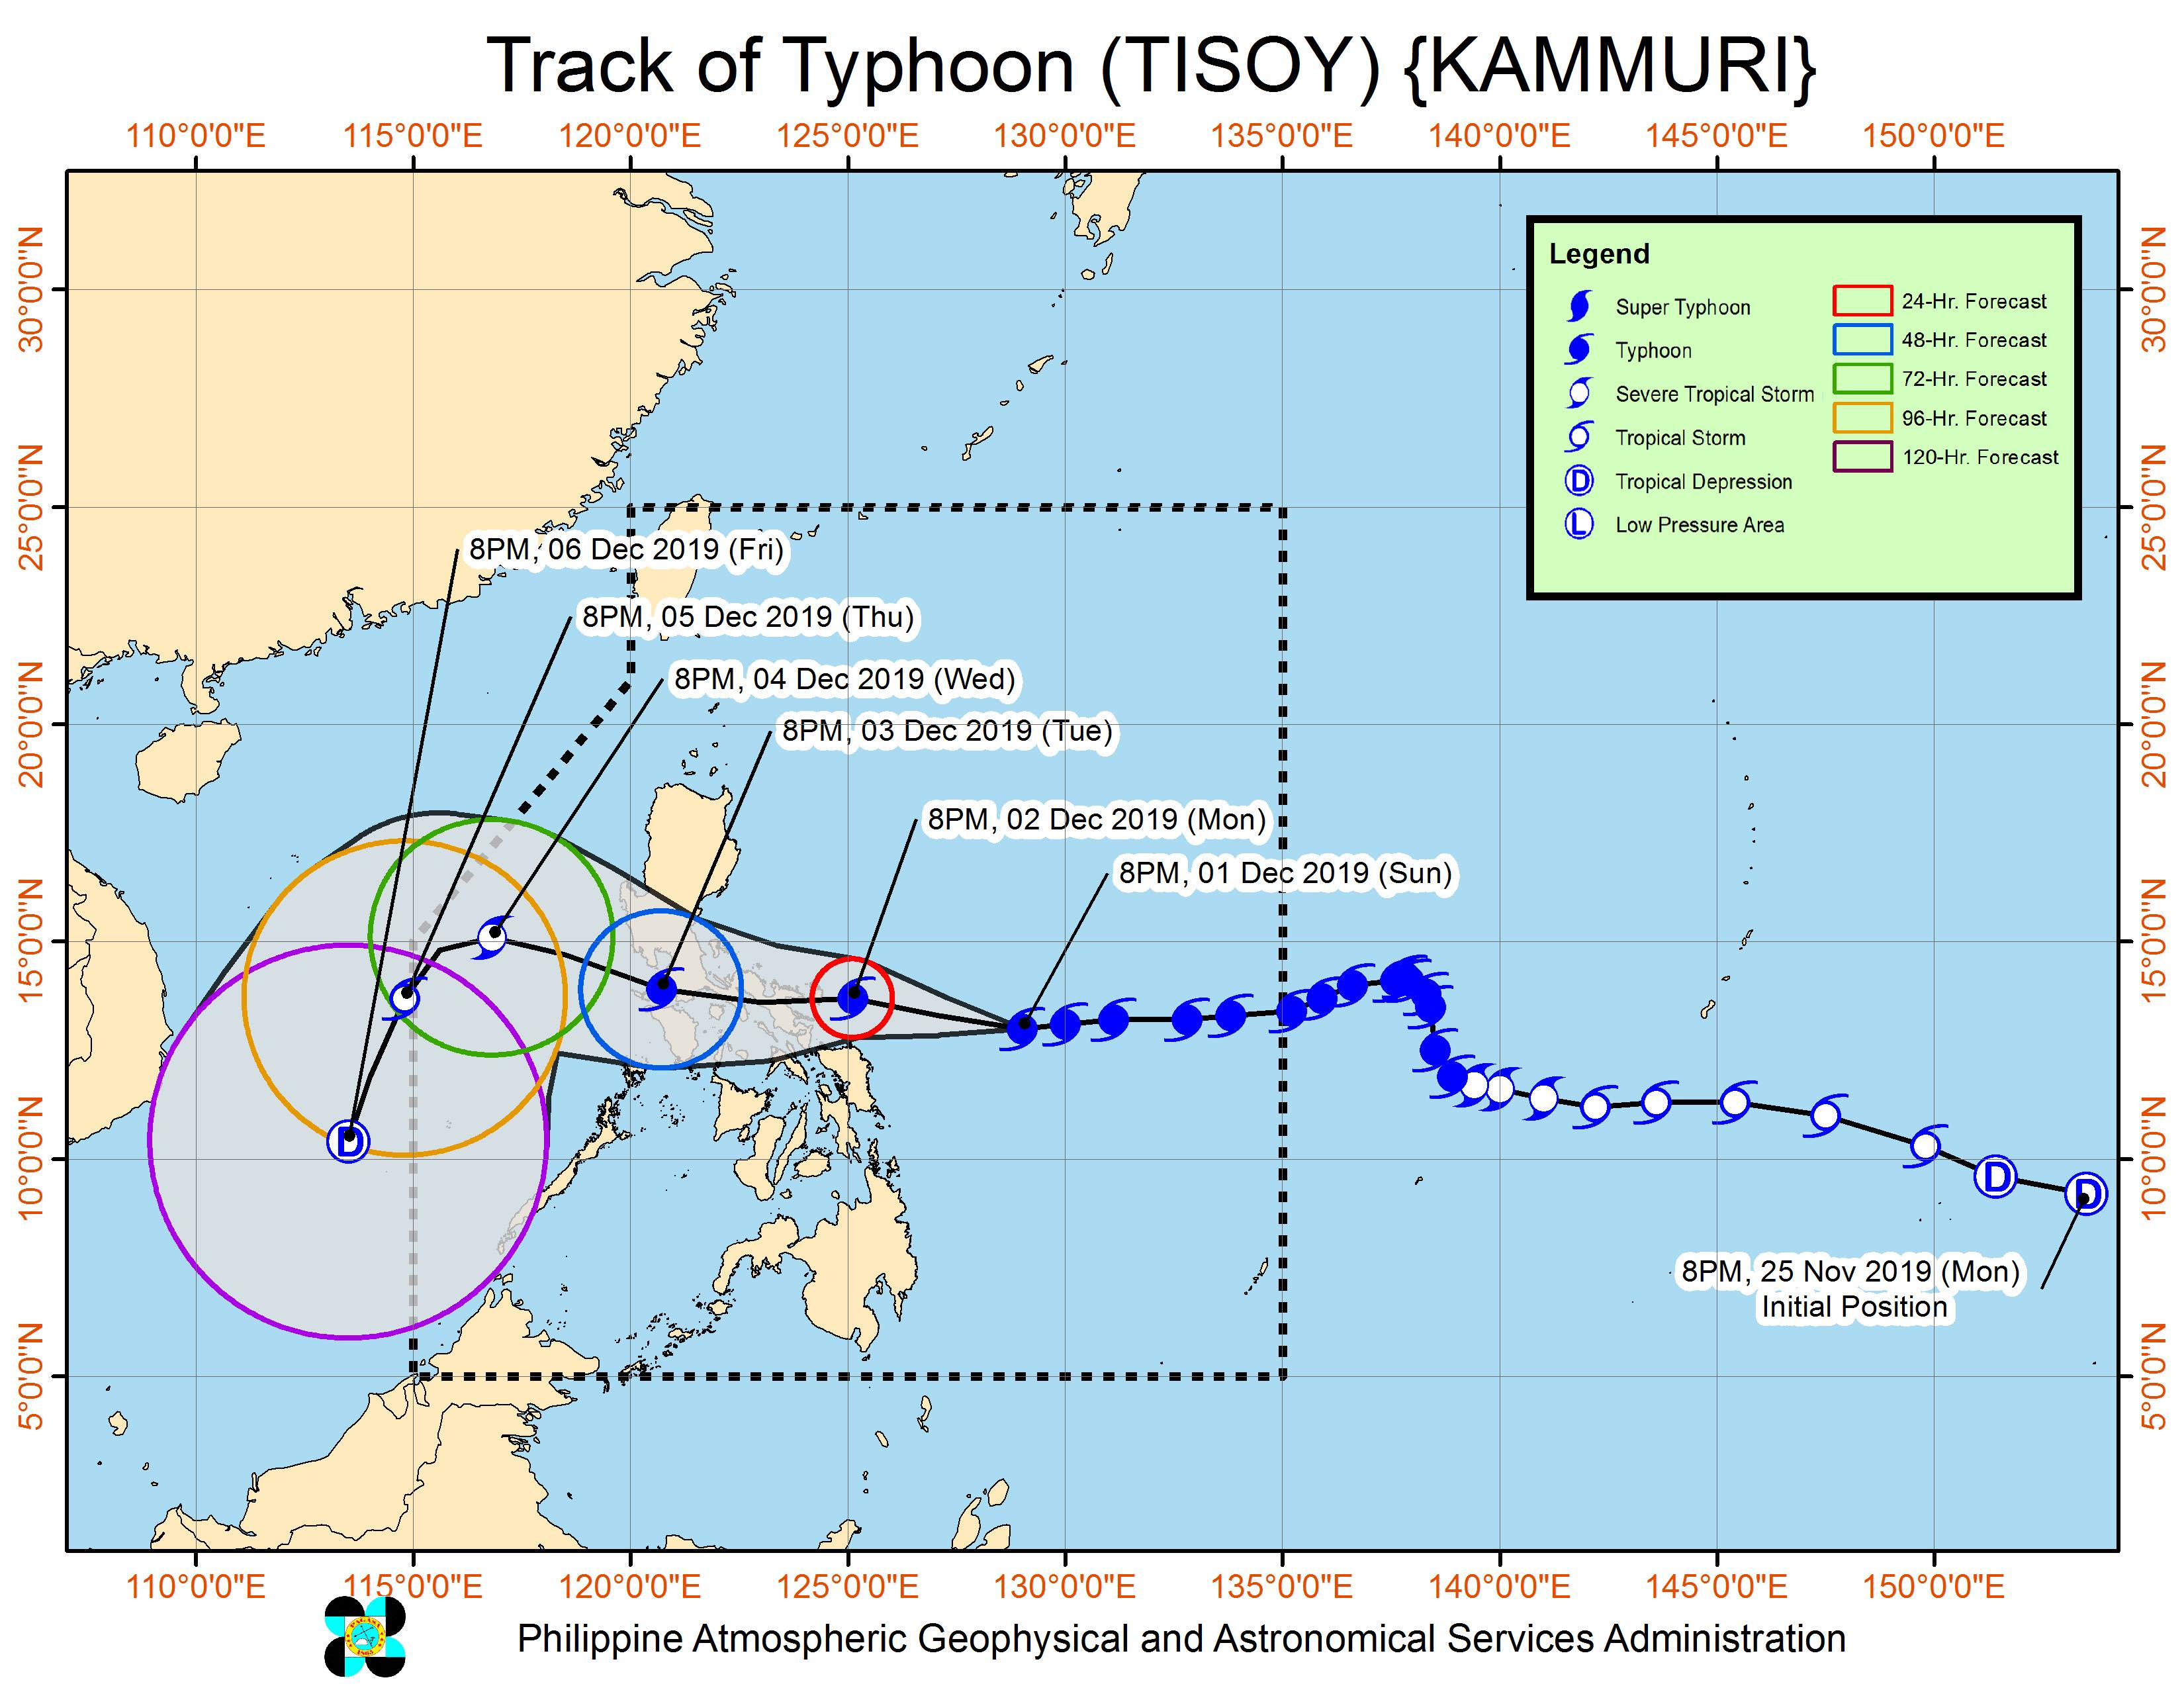 Forecast track of Typhoon Tisoy (Kammuri) as of December 1, 2019, 11 pm. Image from PAGASA